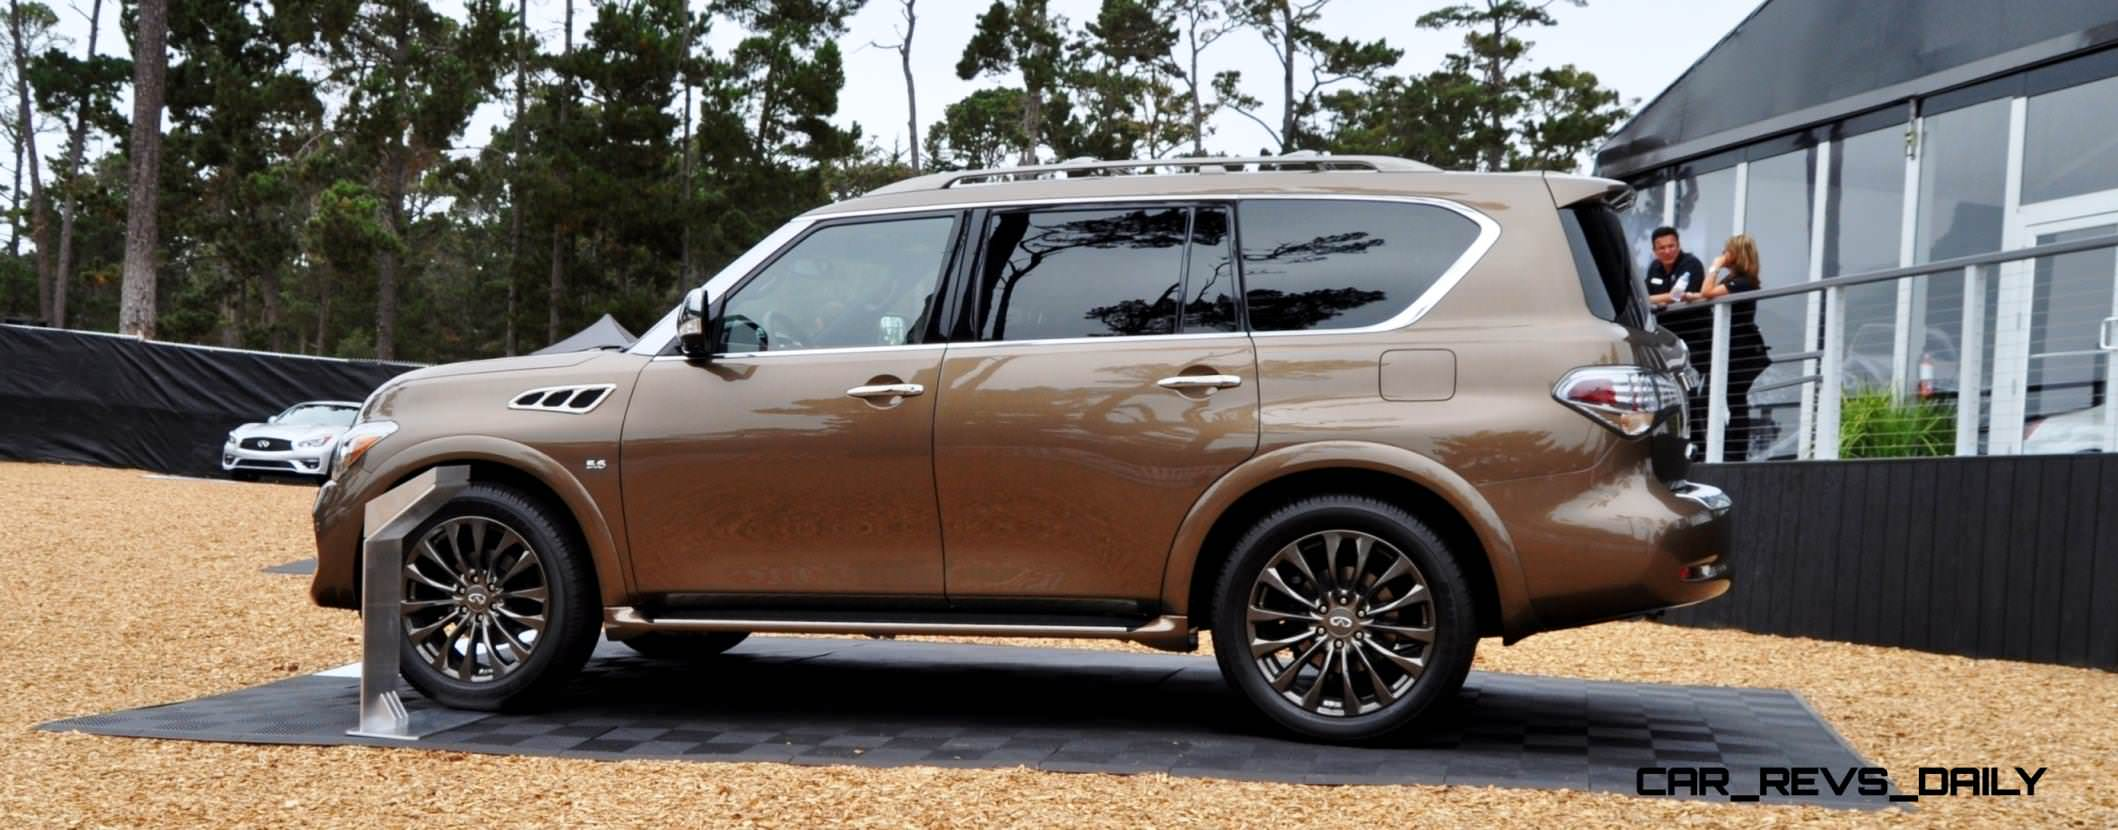 2015 infiniti qx80 limited changes 2017 2018 best cars reviews. Black Bedroom Furniture Sets. Home Design Ideas